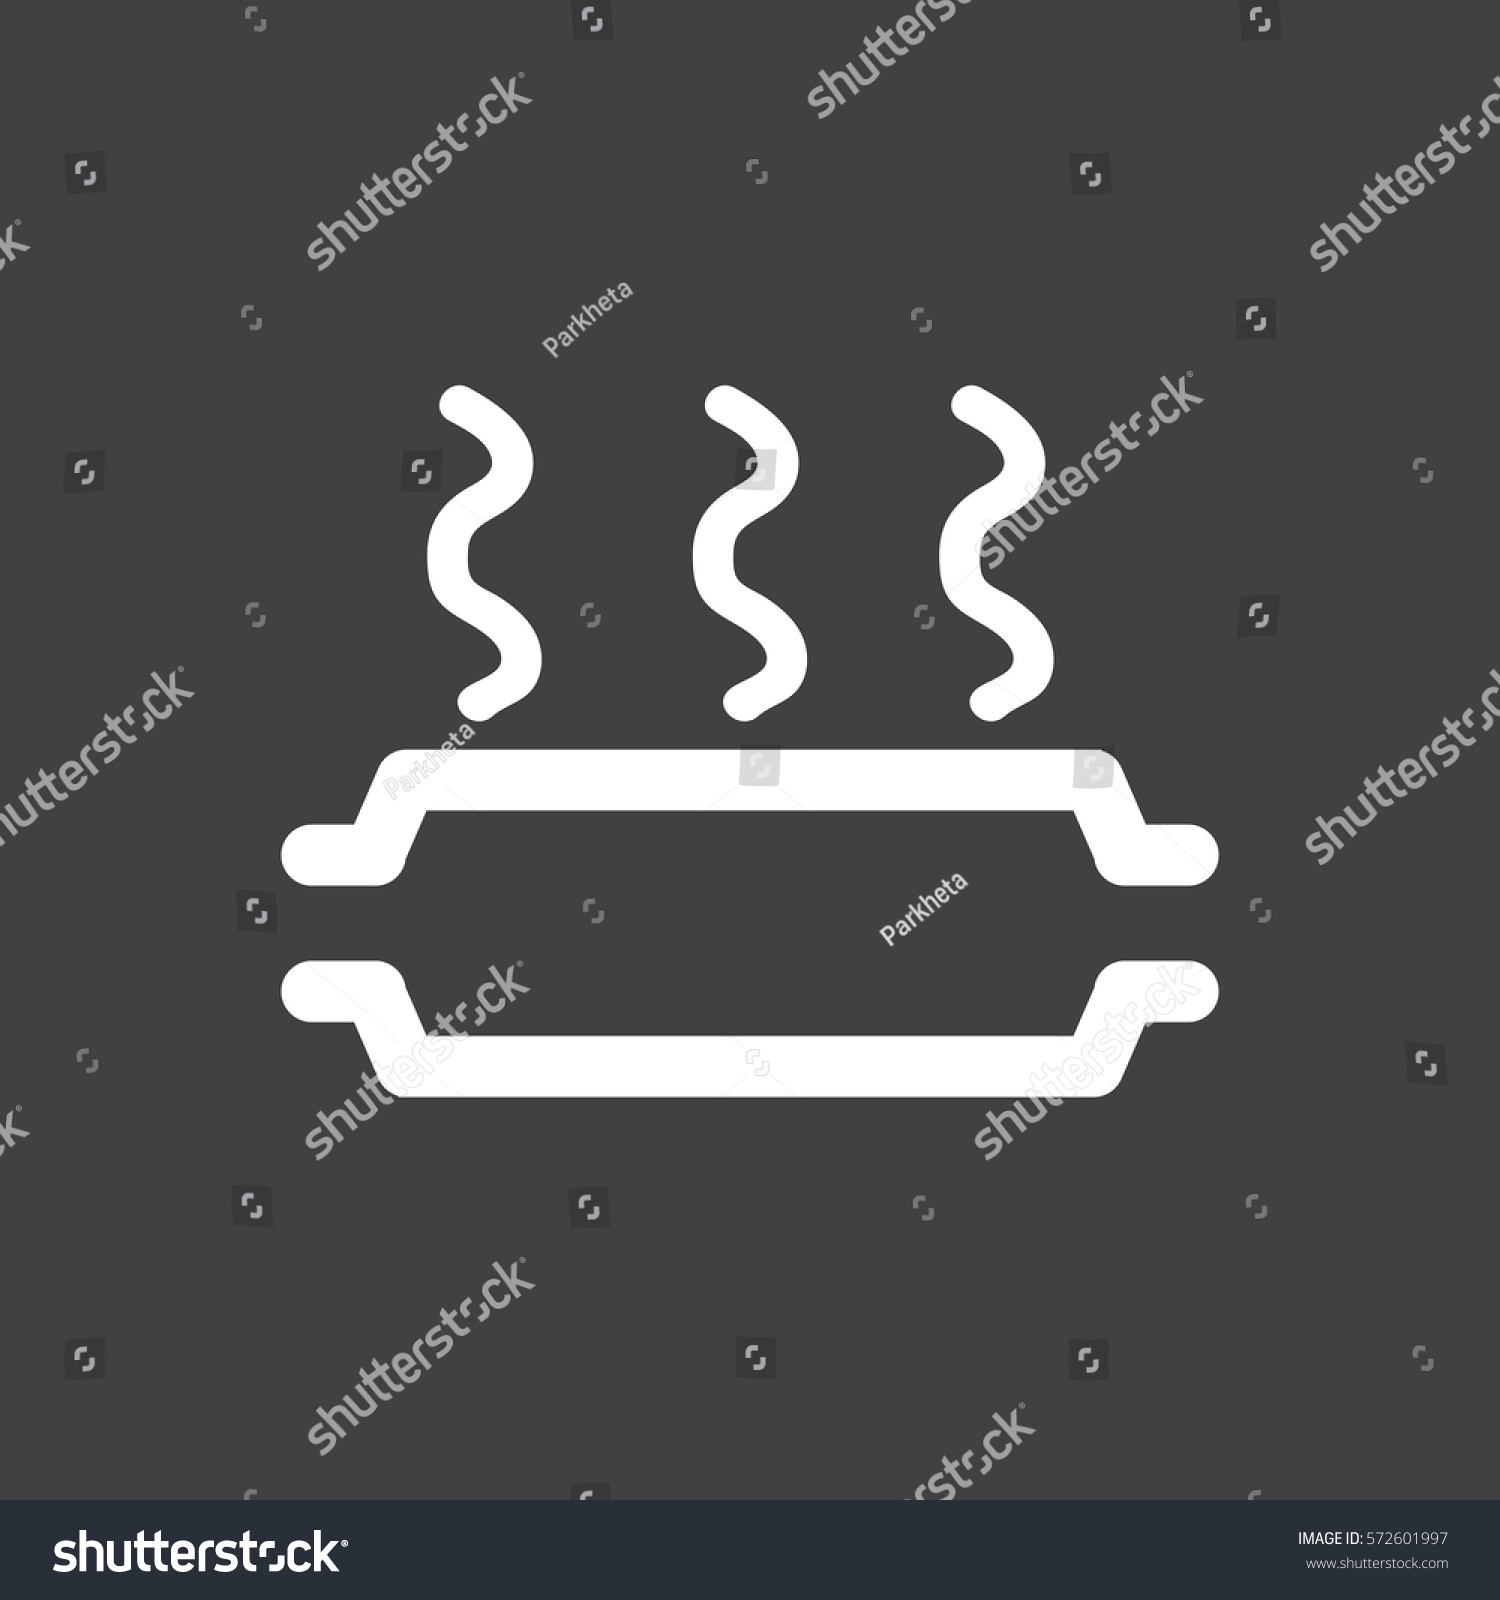 Vector Illustration Sign On Car Dashboard Stock Vector - Car image sign of dashboard